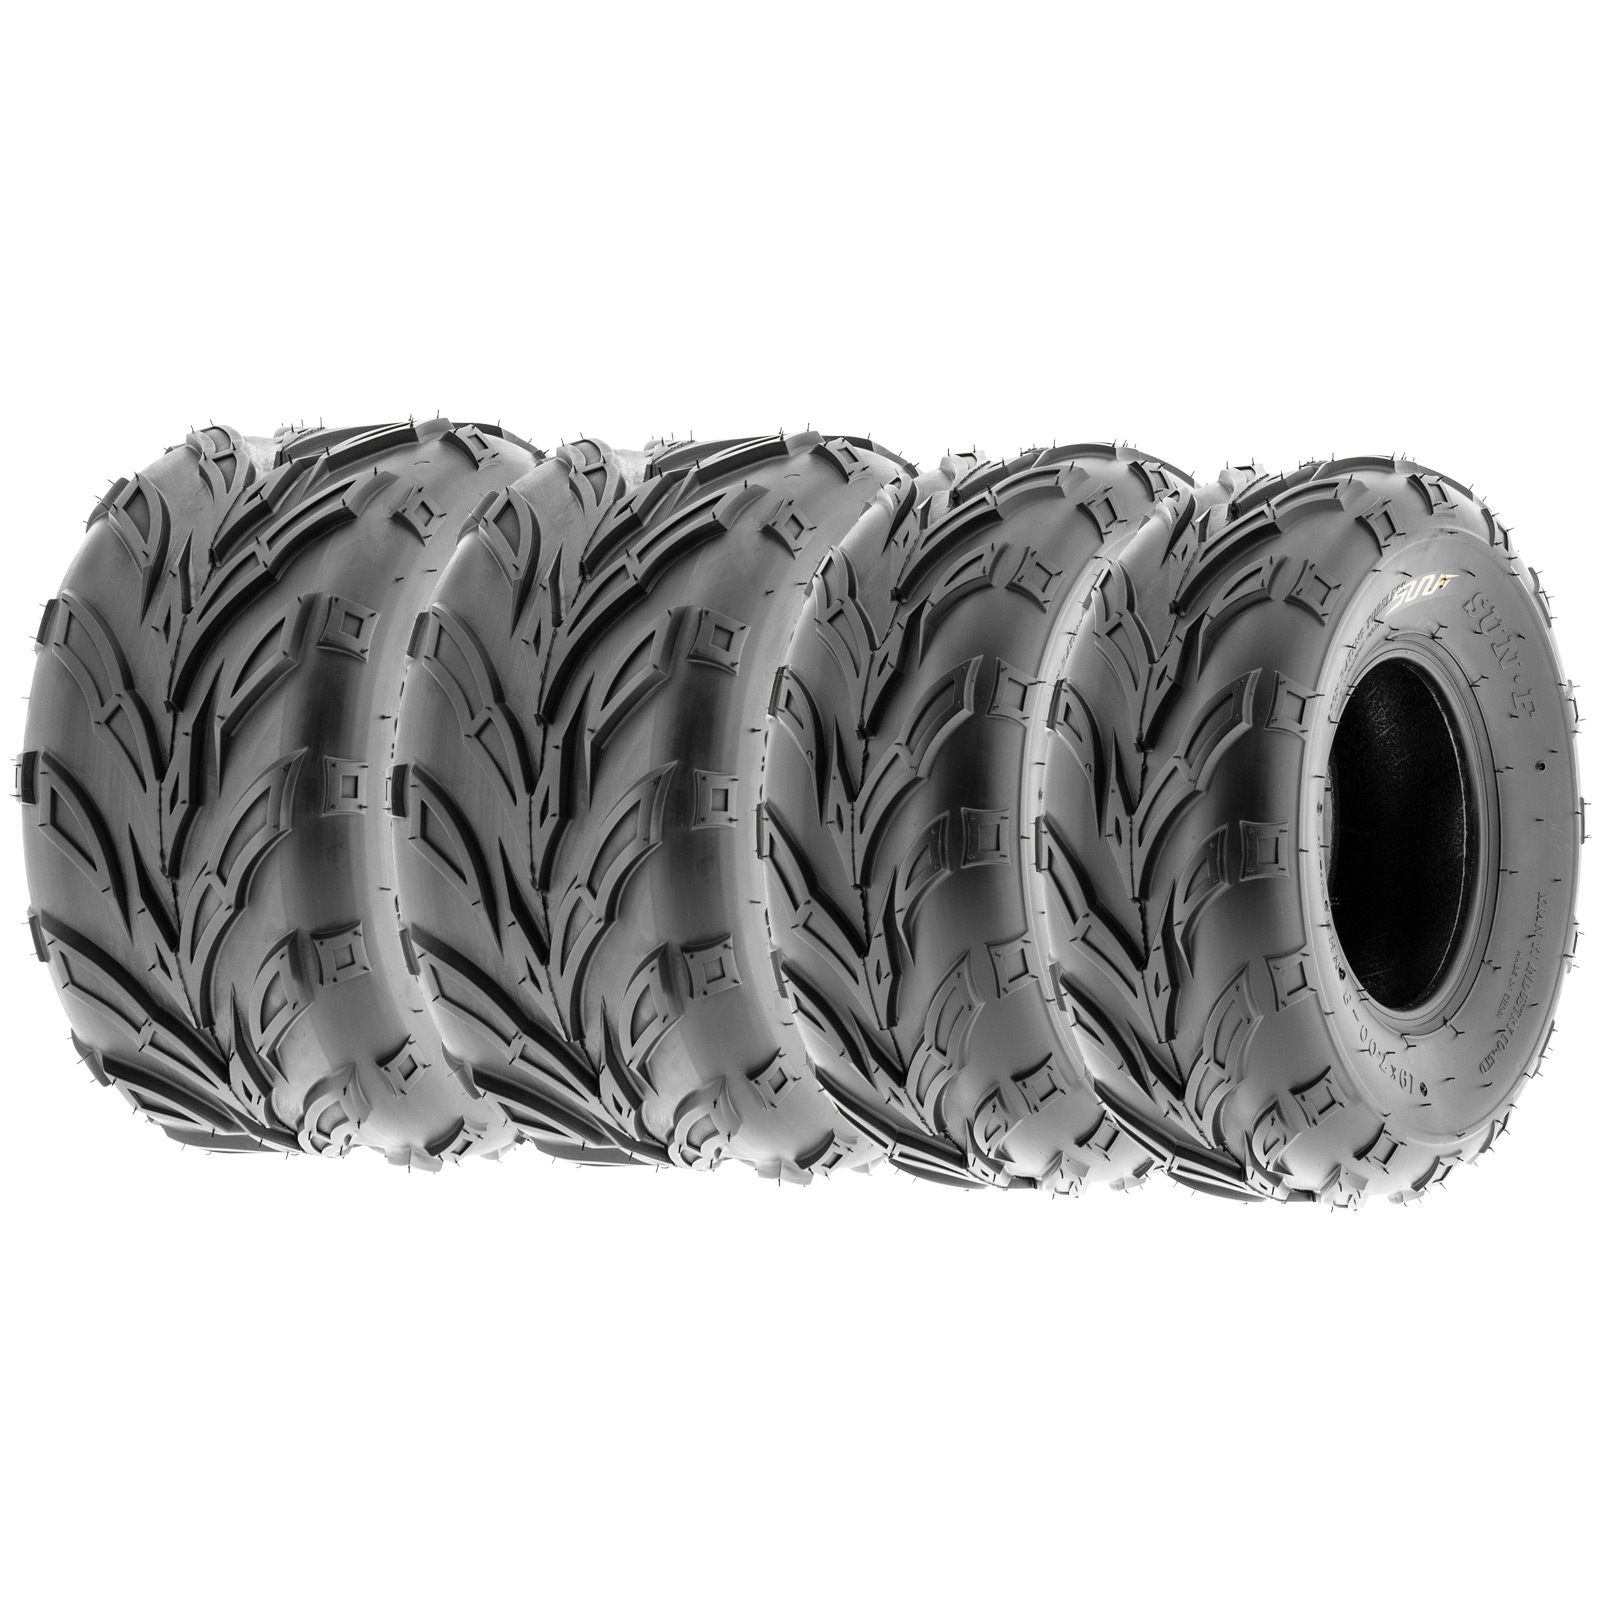 SunF ATV Quad Tires 19x7-8 & 19x9.5-8 4 PR A004 (Full set...